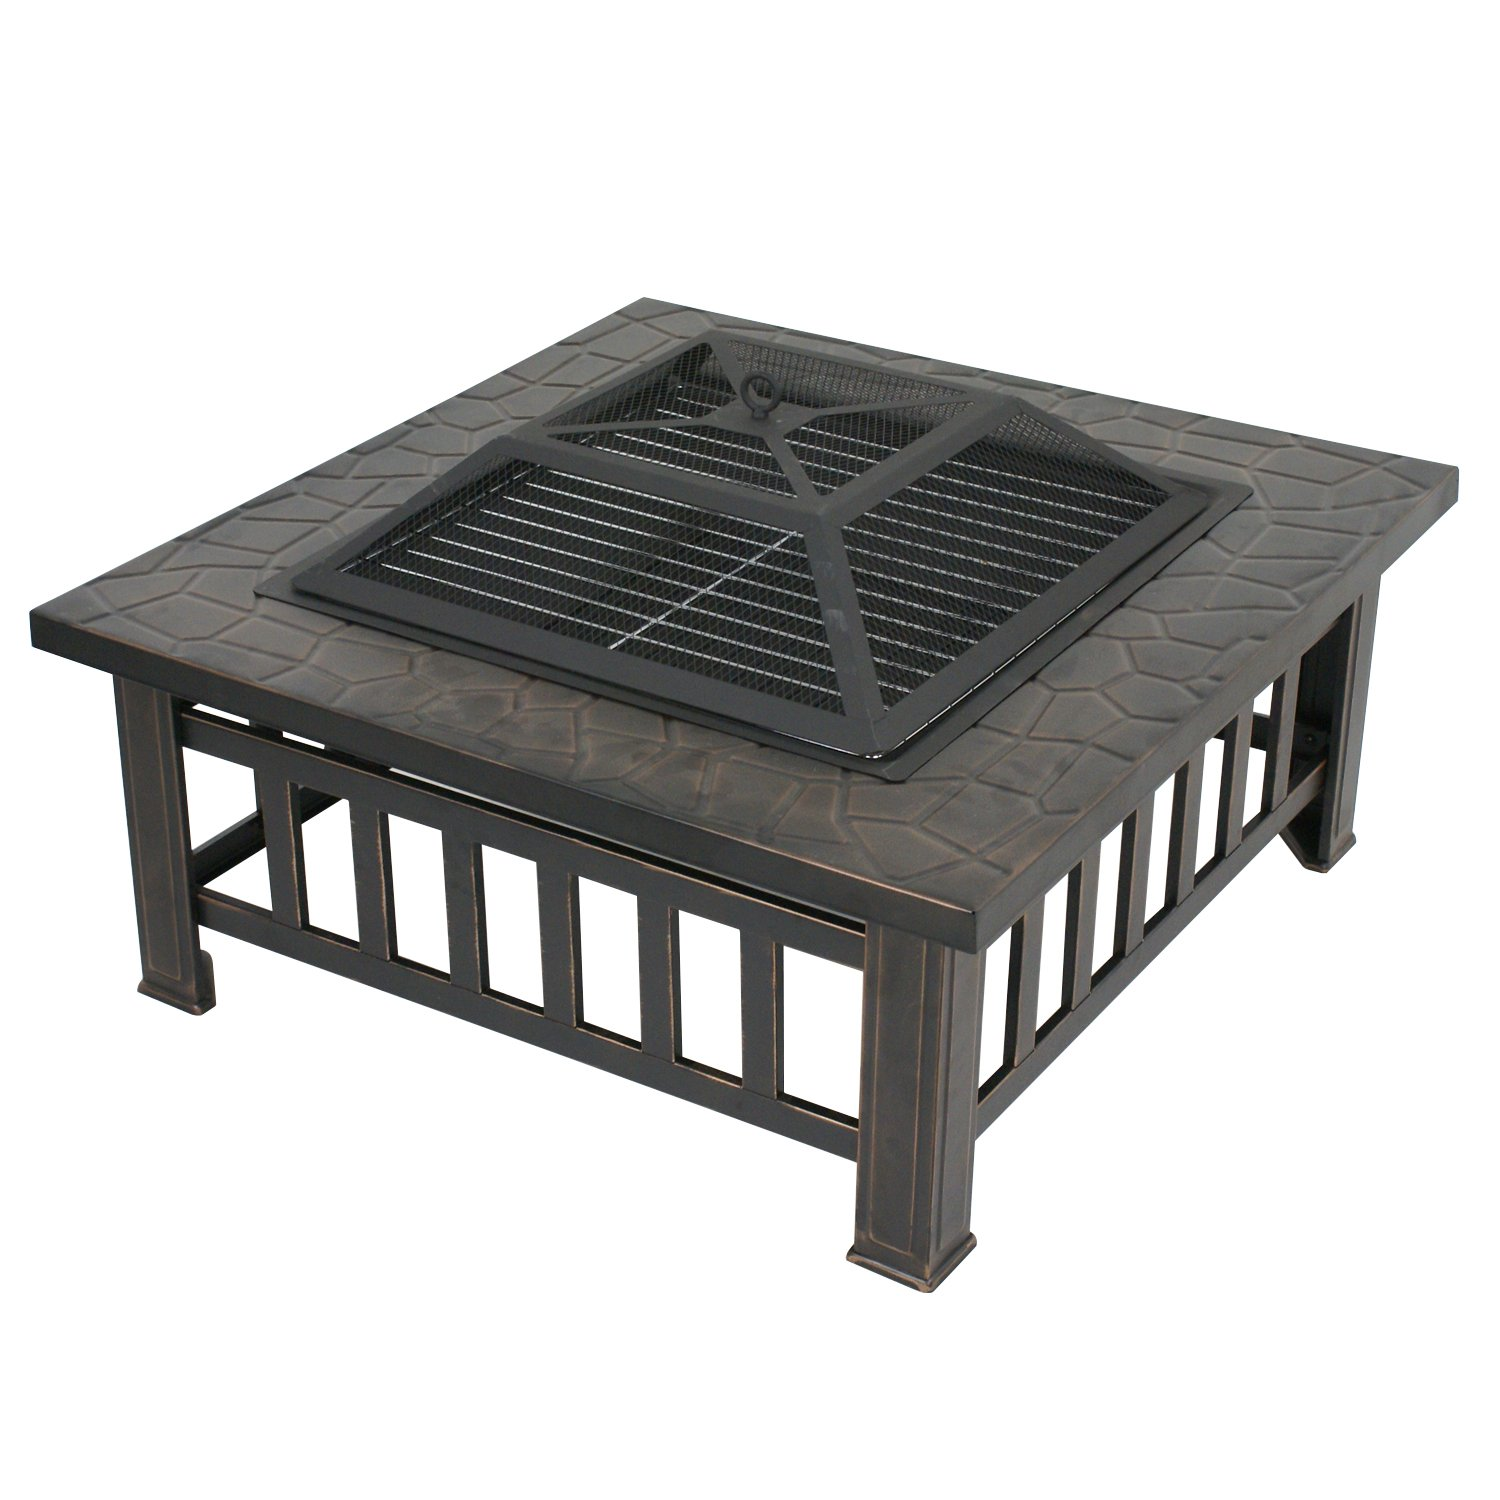 Zeny Fire Pit Outdoor 32'' Metal Firepit Backyard Patio Garden Square Stove Fire Pit With Cover (#02)